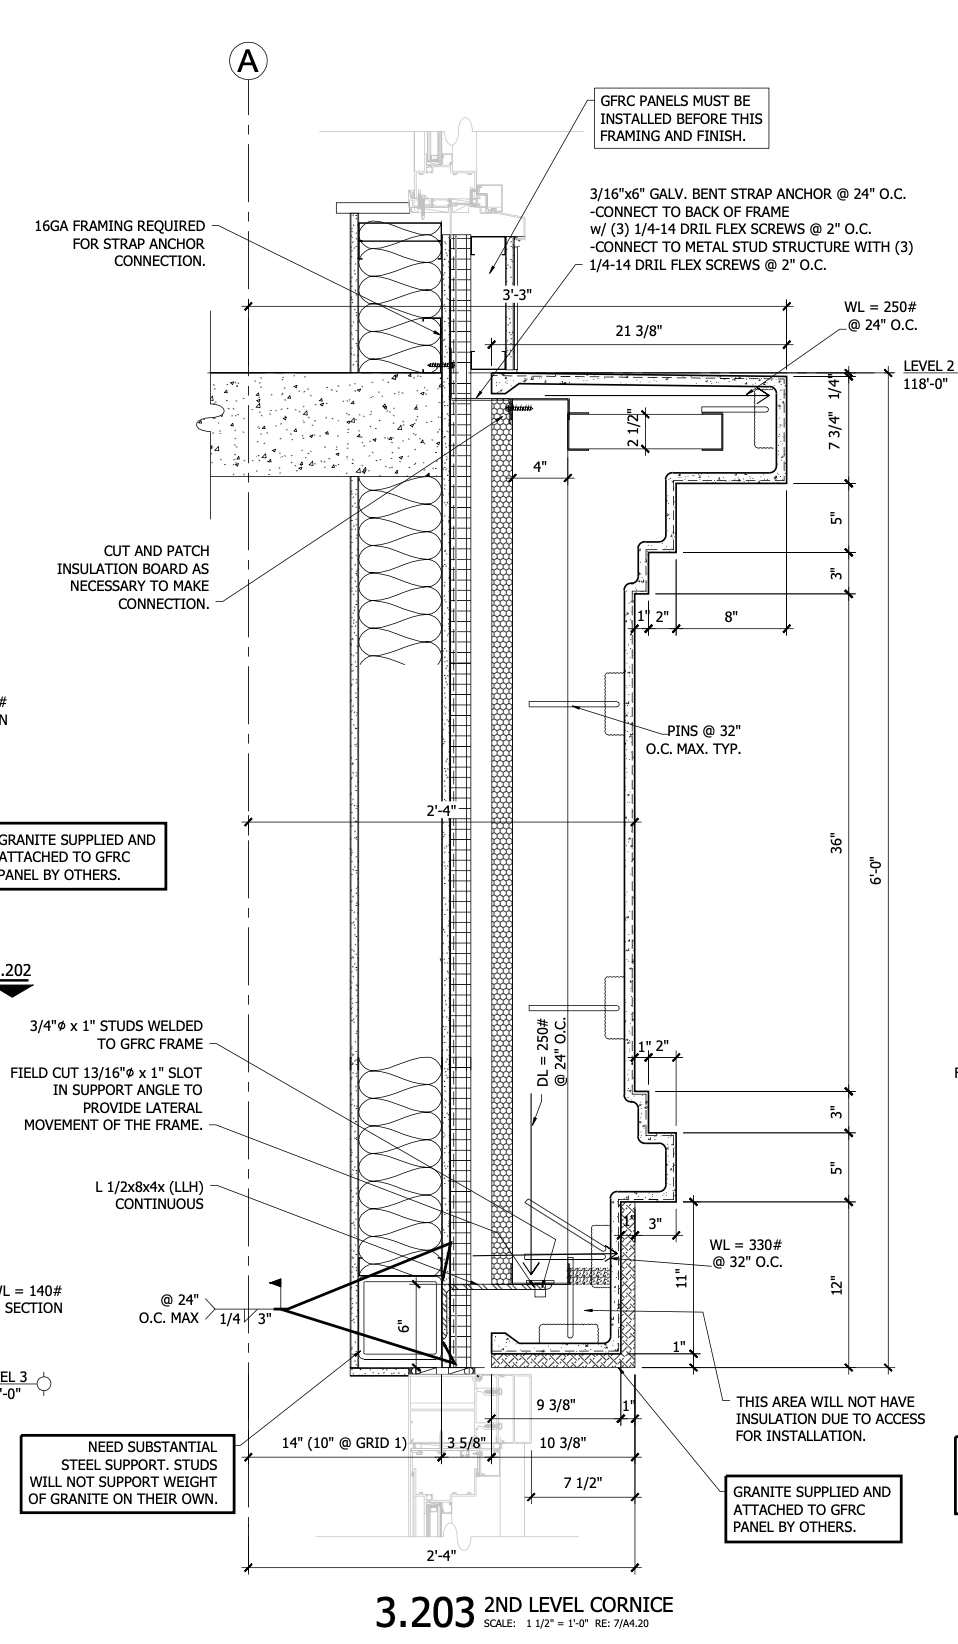 Marriott Hotel CAD Drawing - Section 3_302 - second level cornice - 1